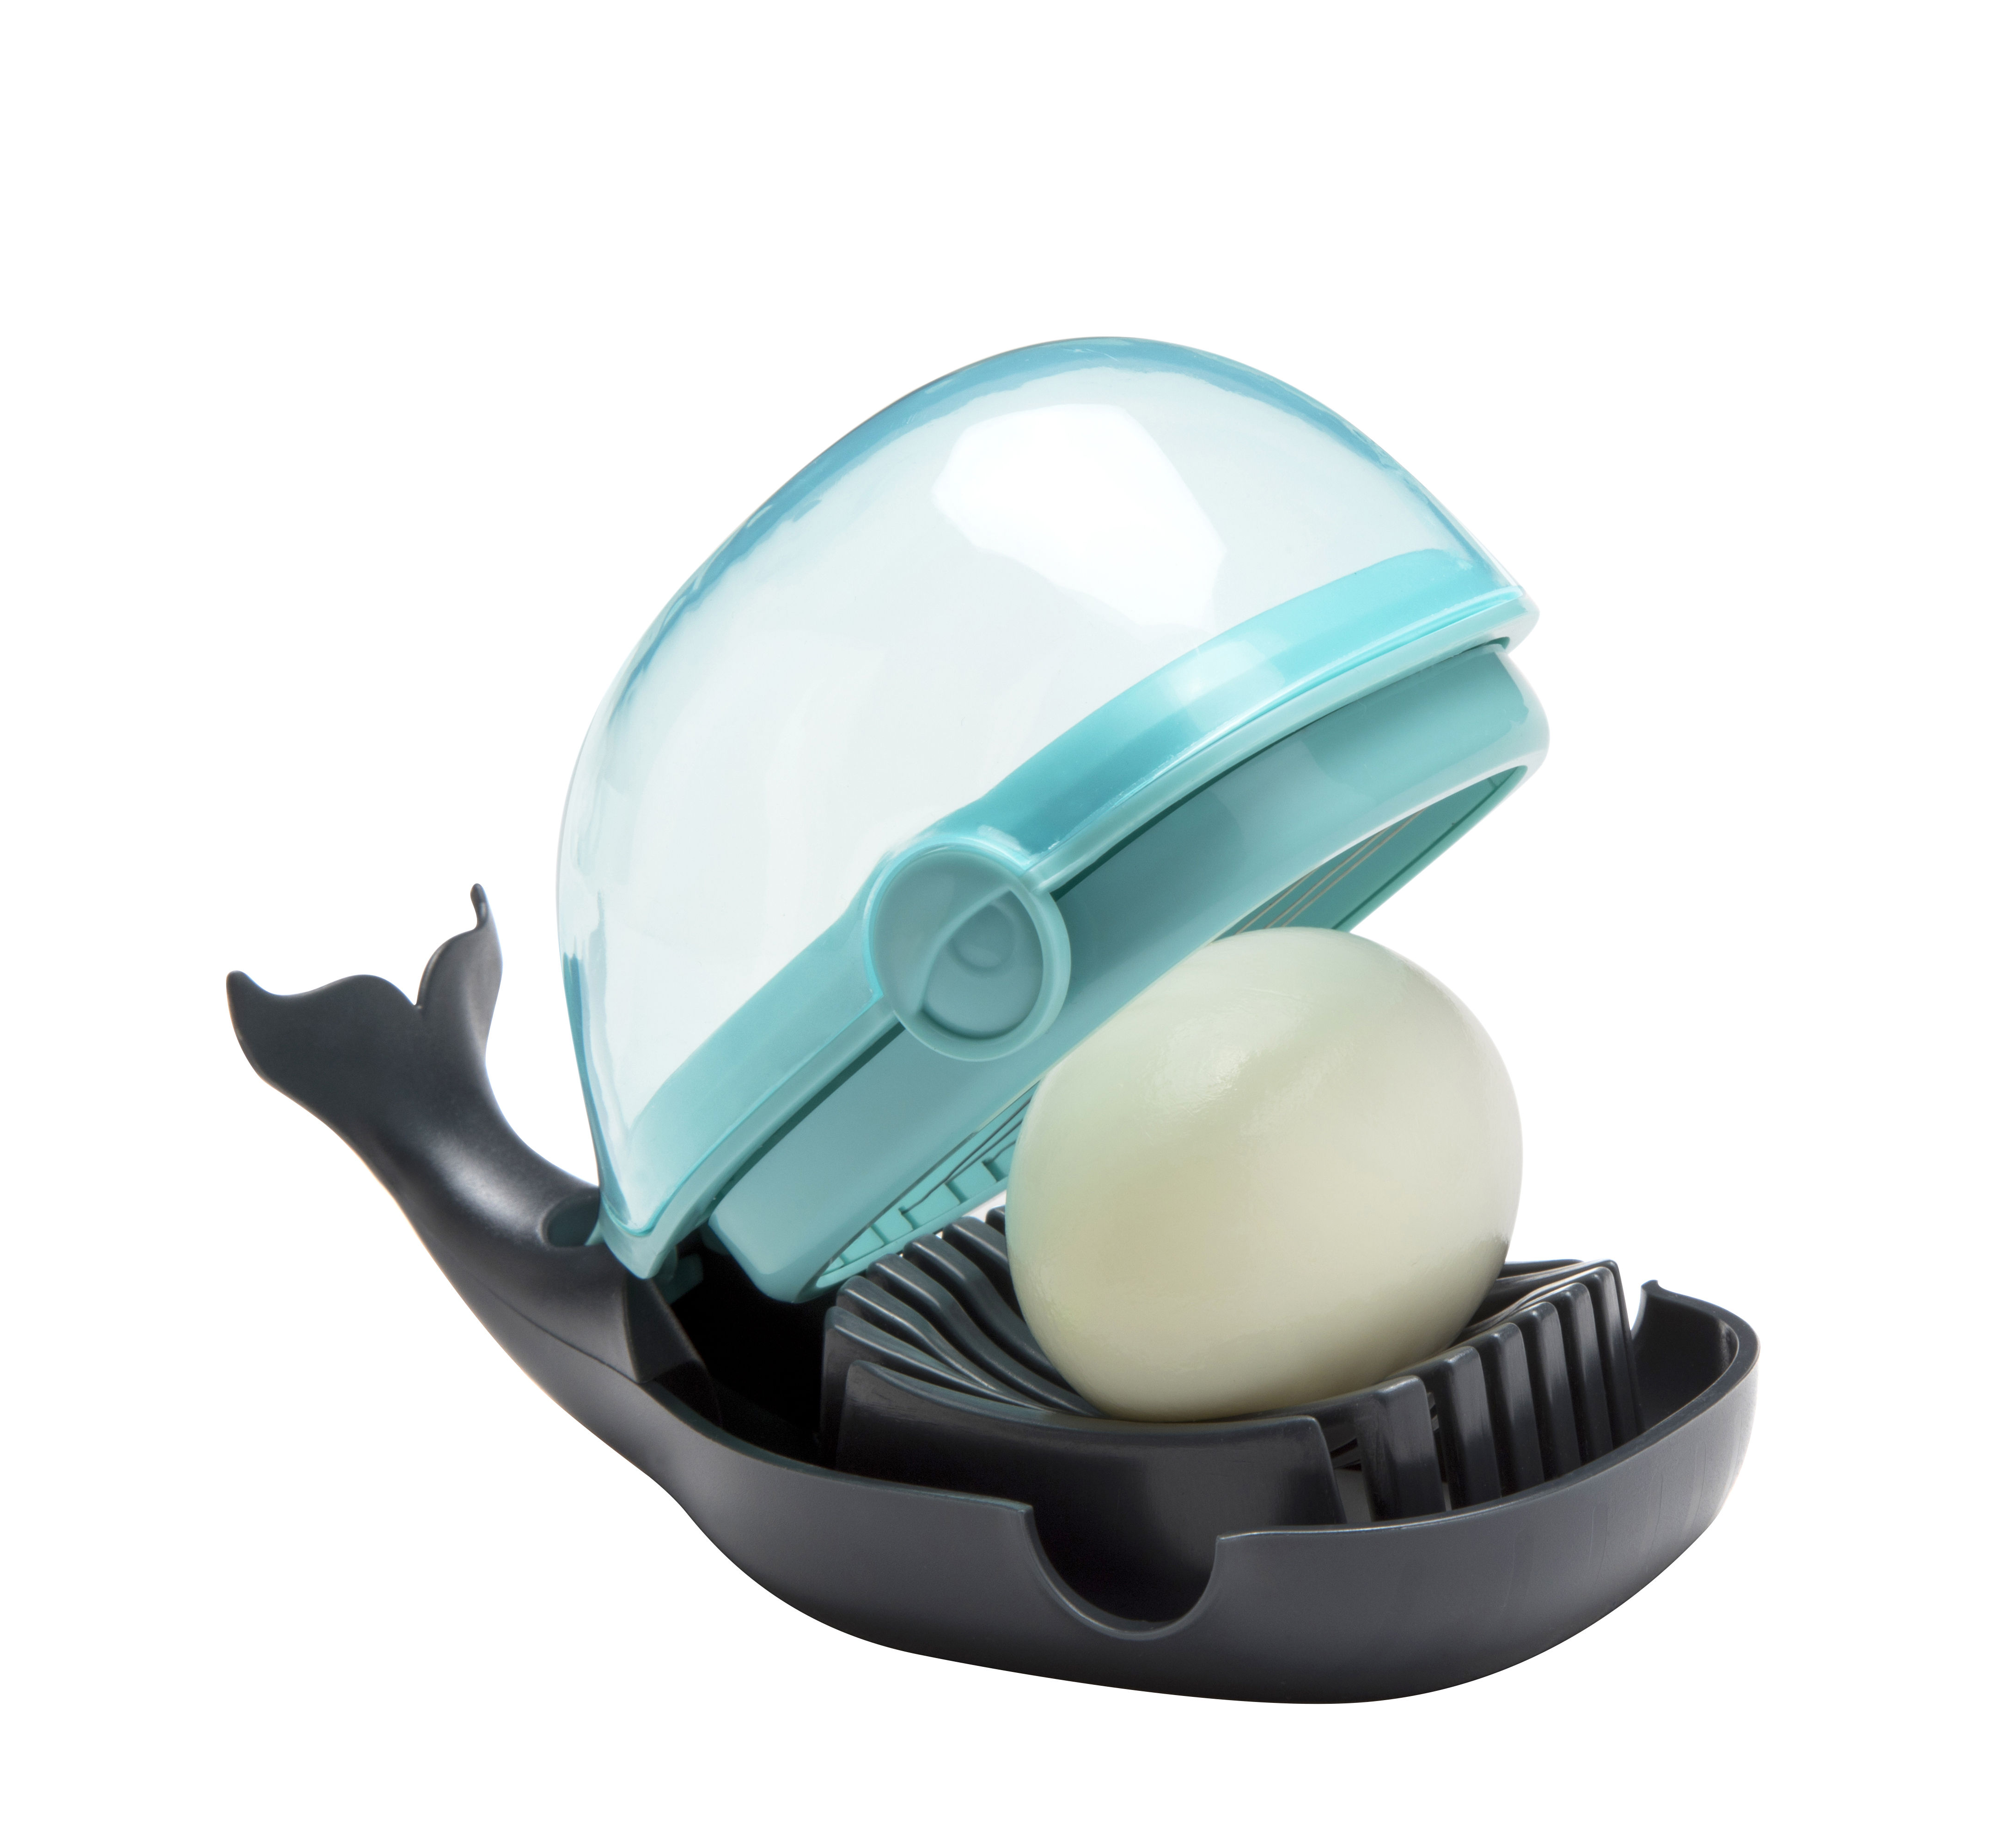 Kitchenware - Kitchen Equipment - Humphrey Egg cutter by Pa Design - Bleu - ABS, Stainless steel